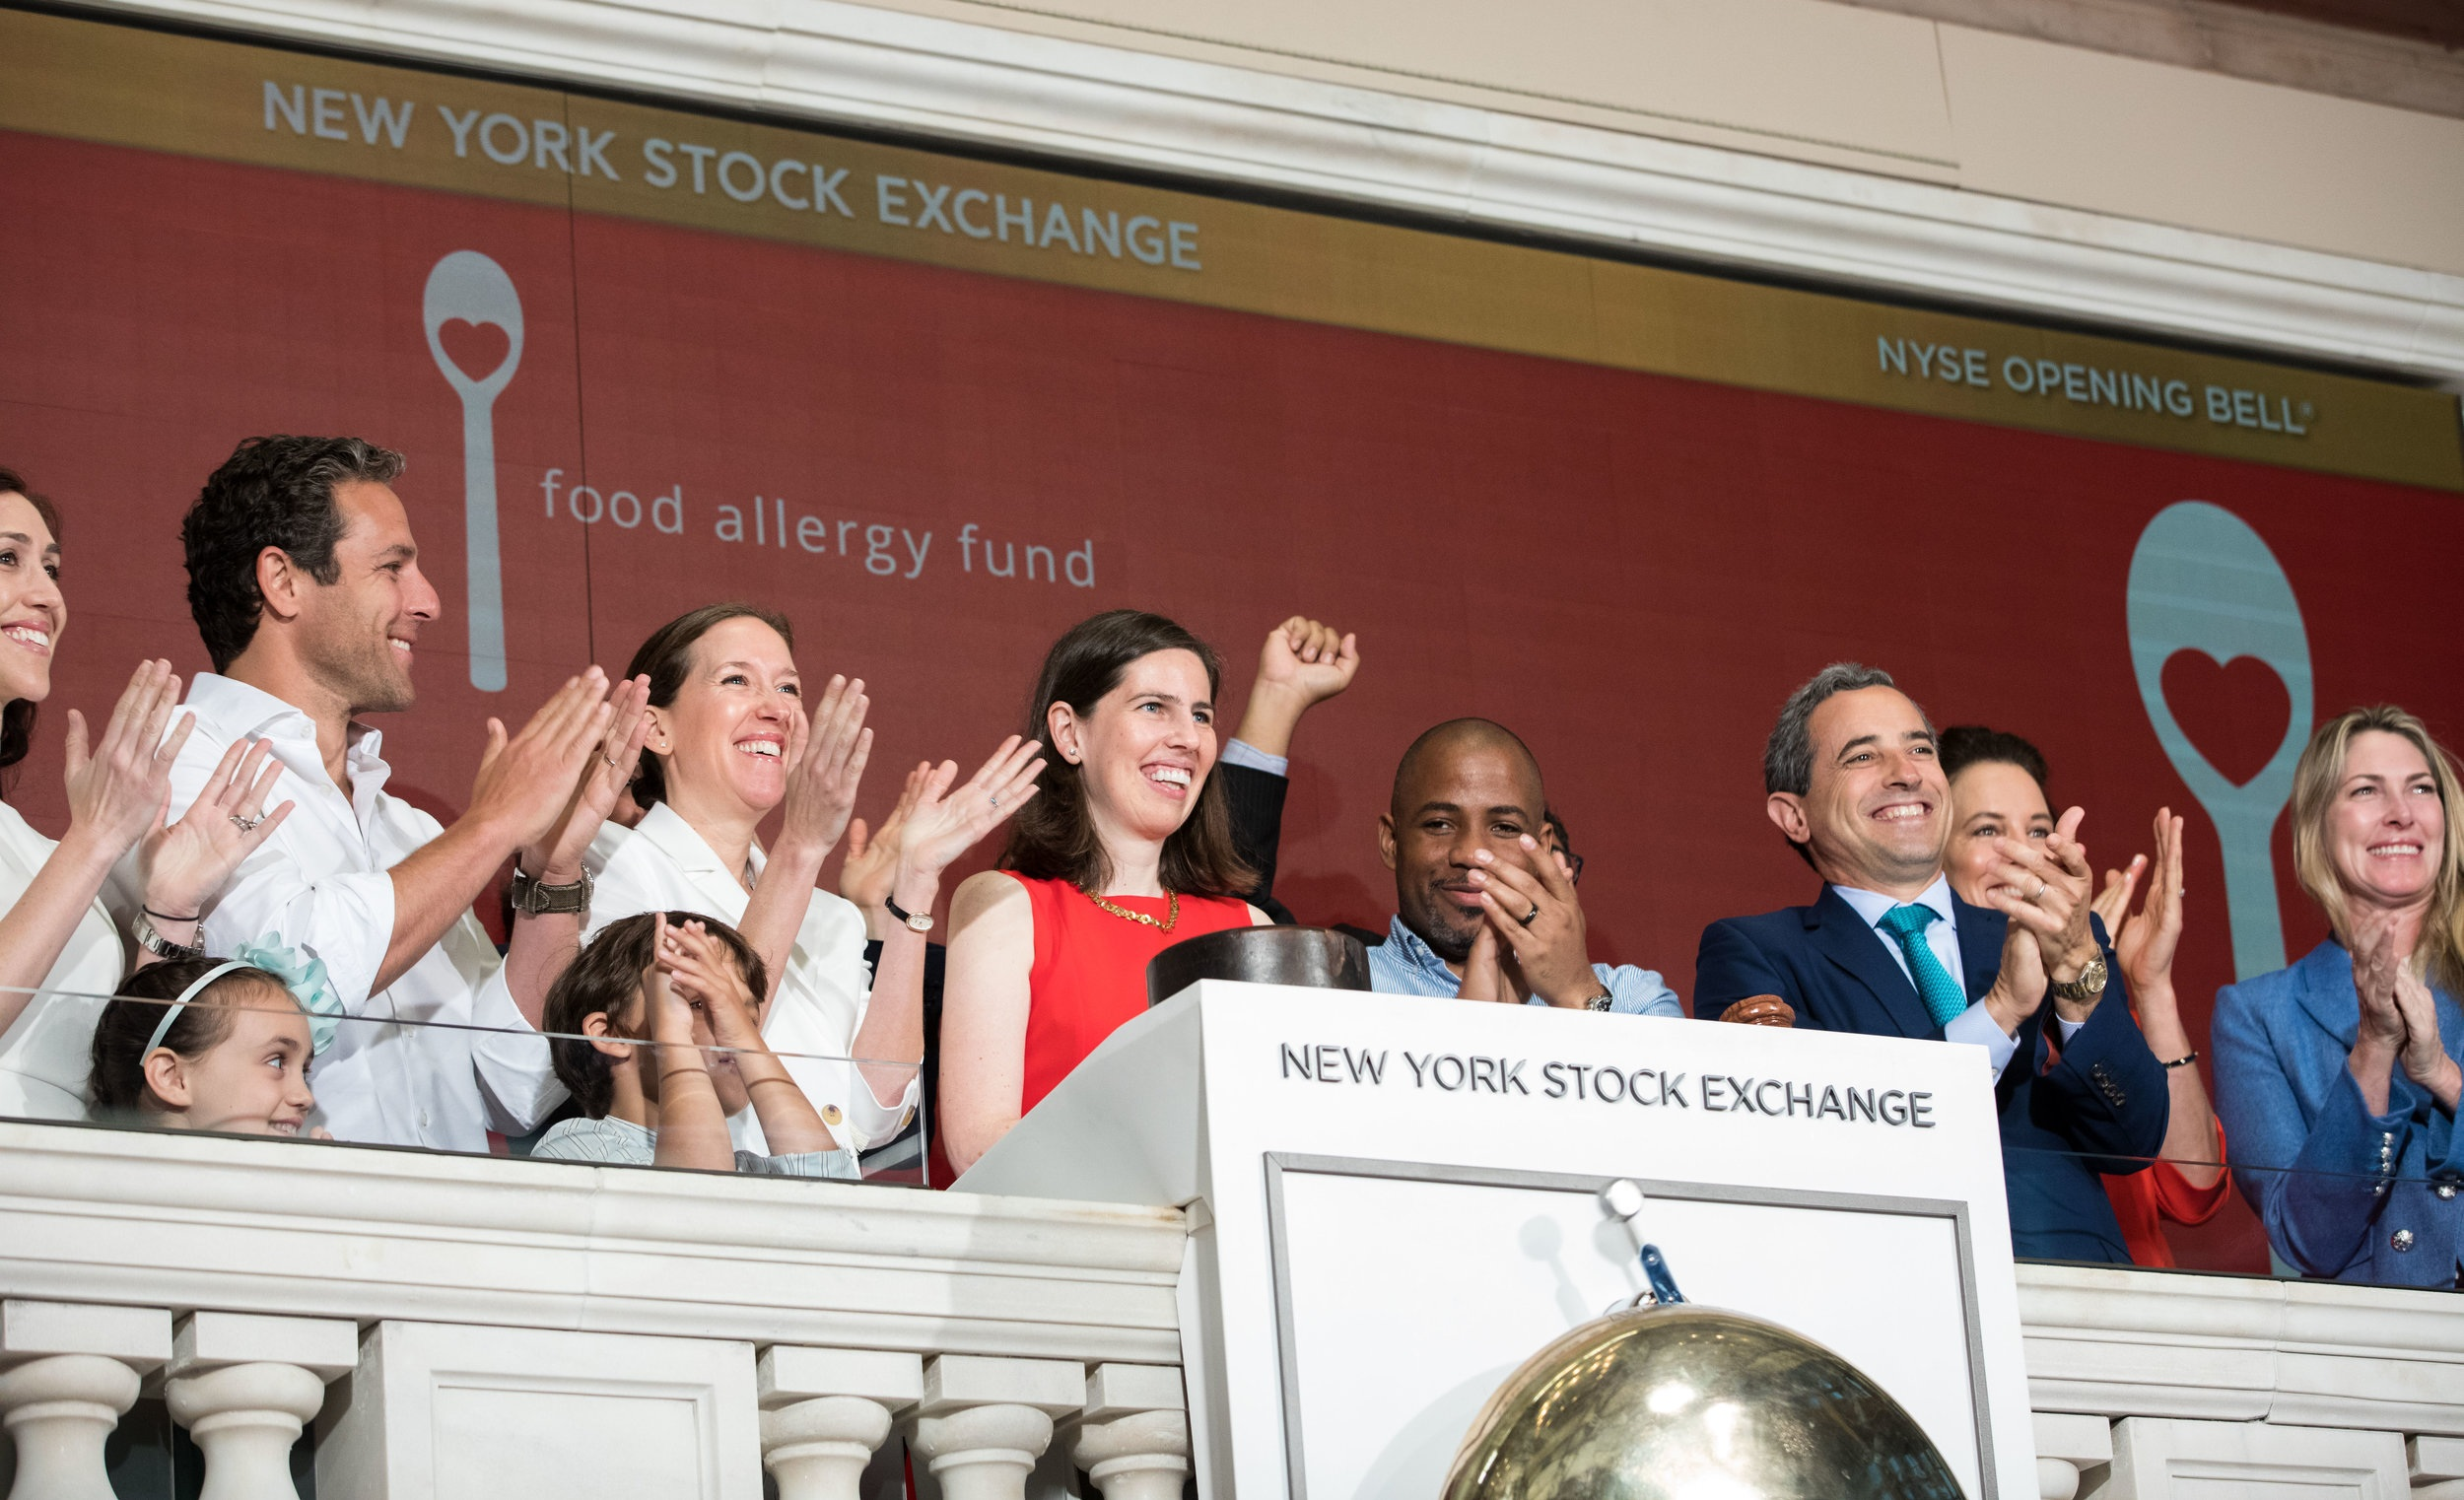 FOOD ALLERGY FUND RINGS NYSE OPENING BELL -